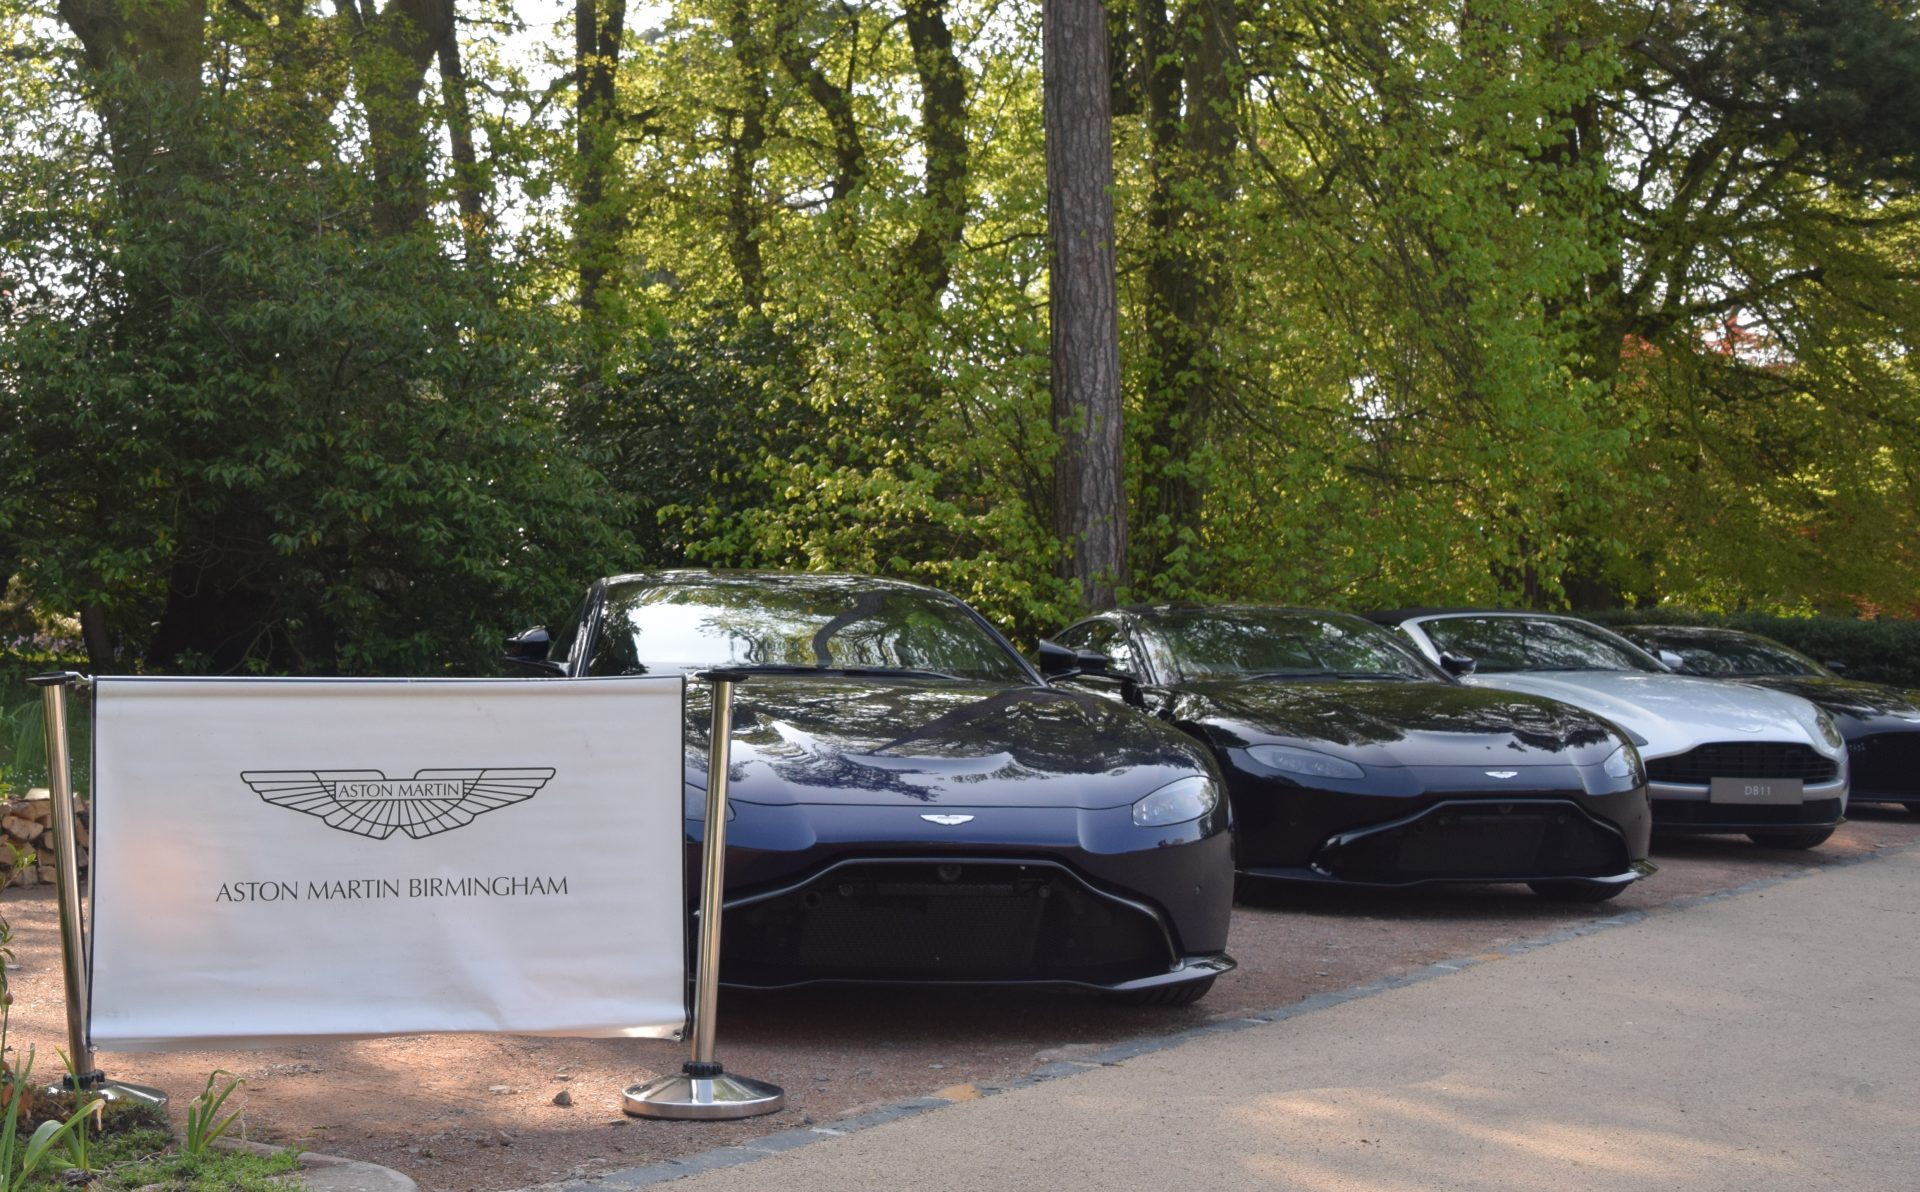 Aston Martin Driving Day